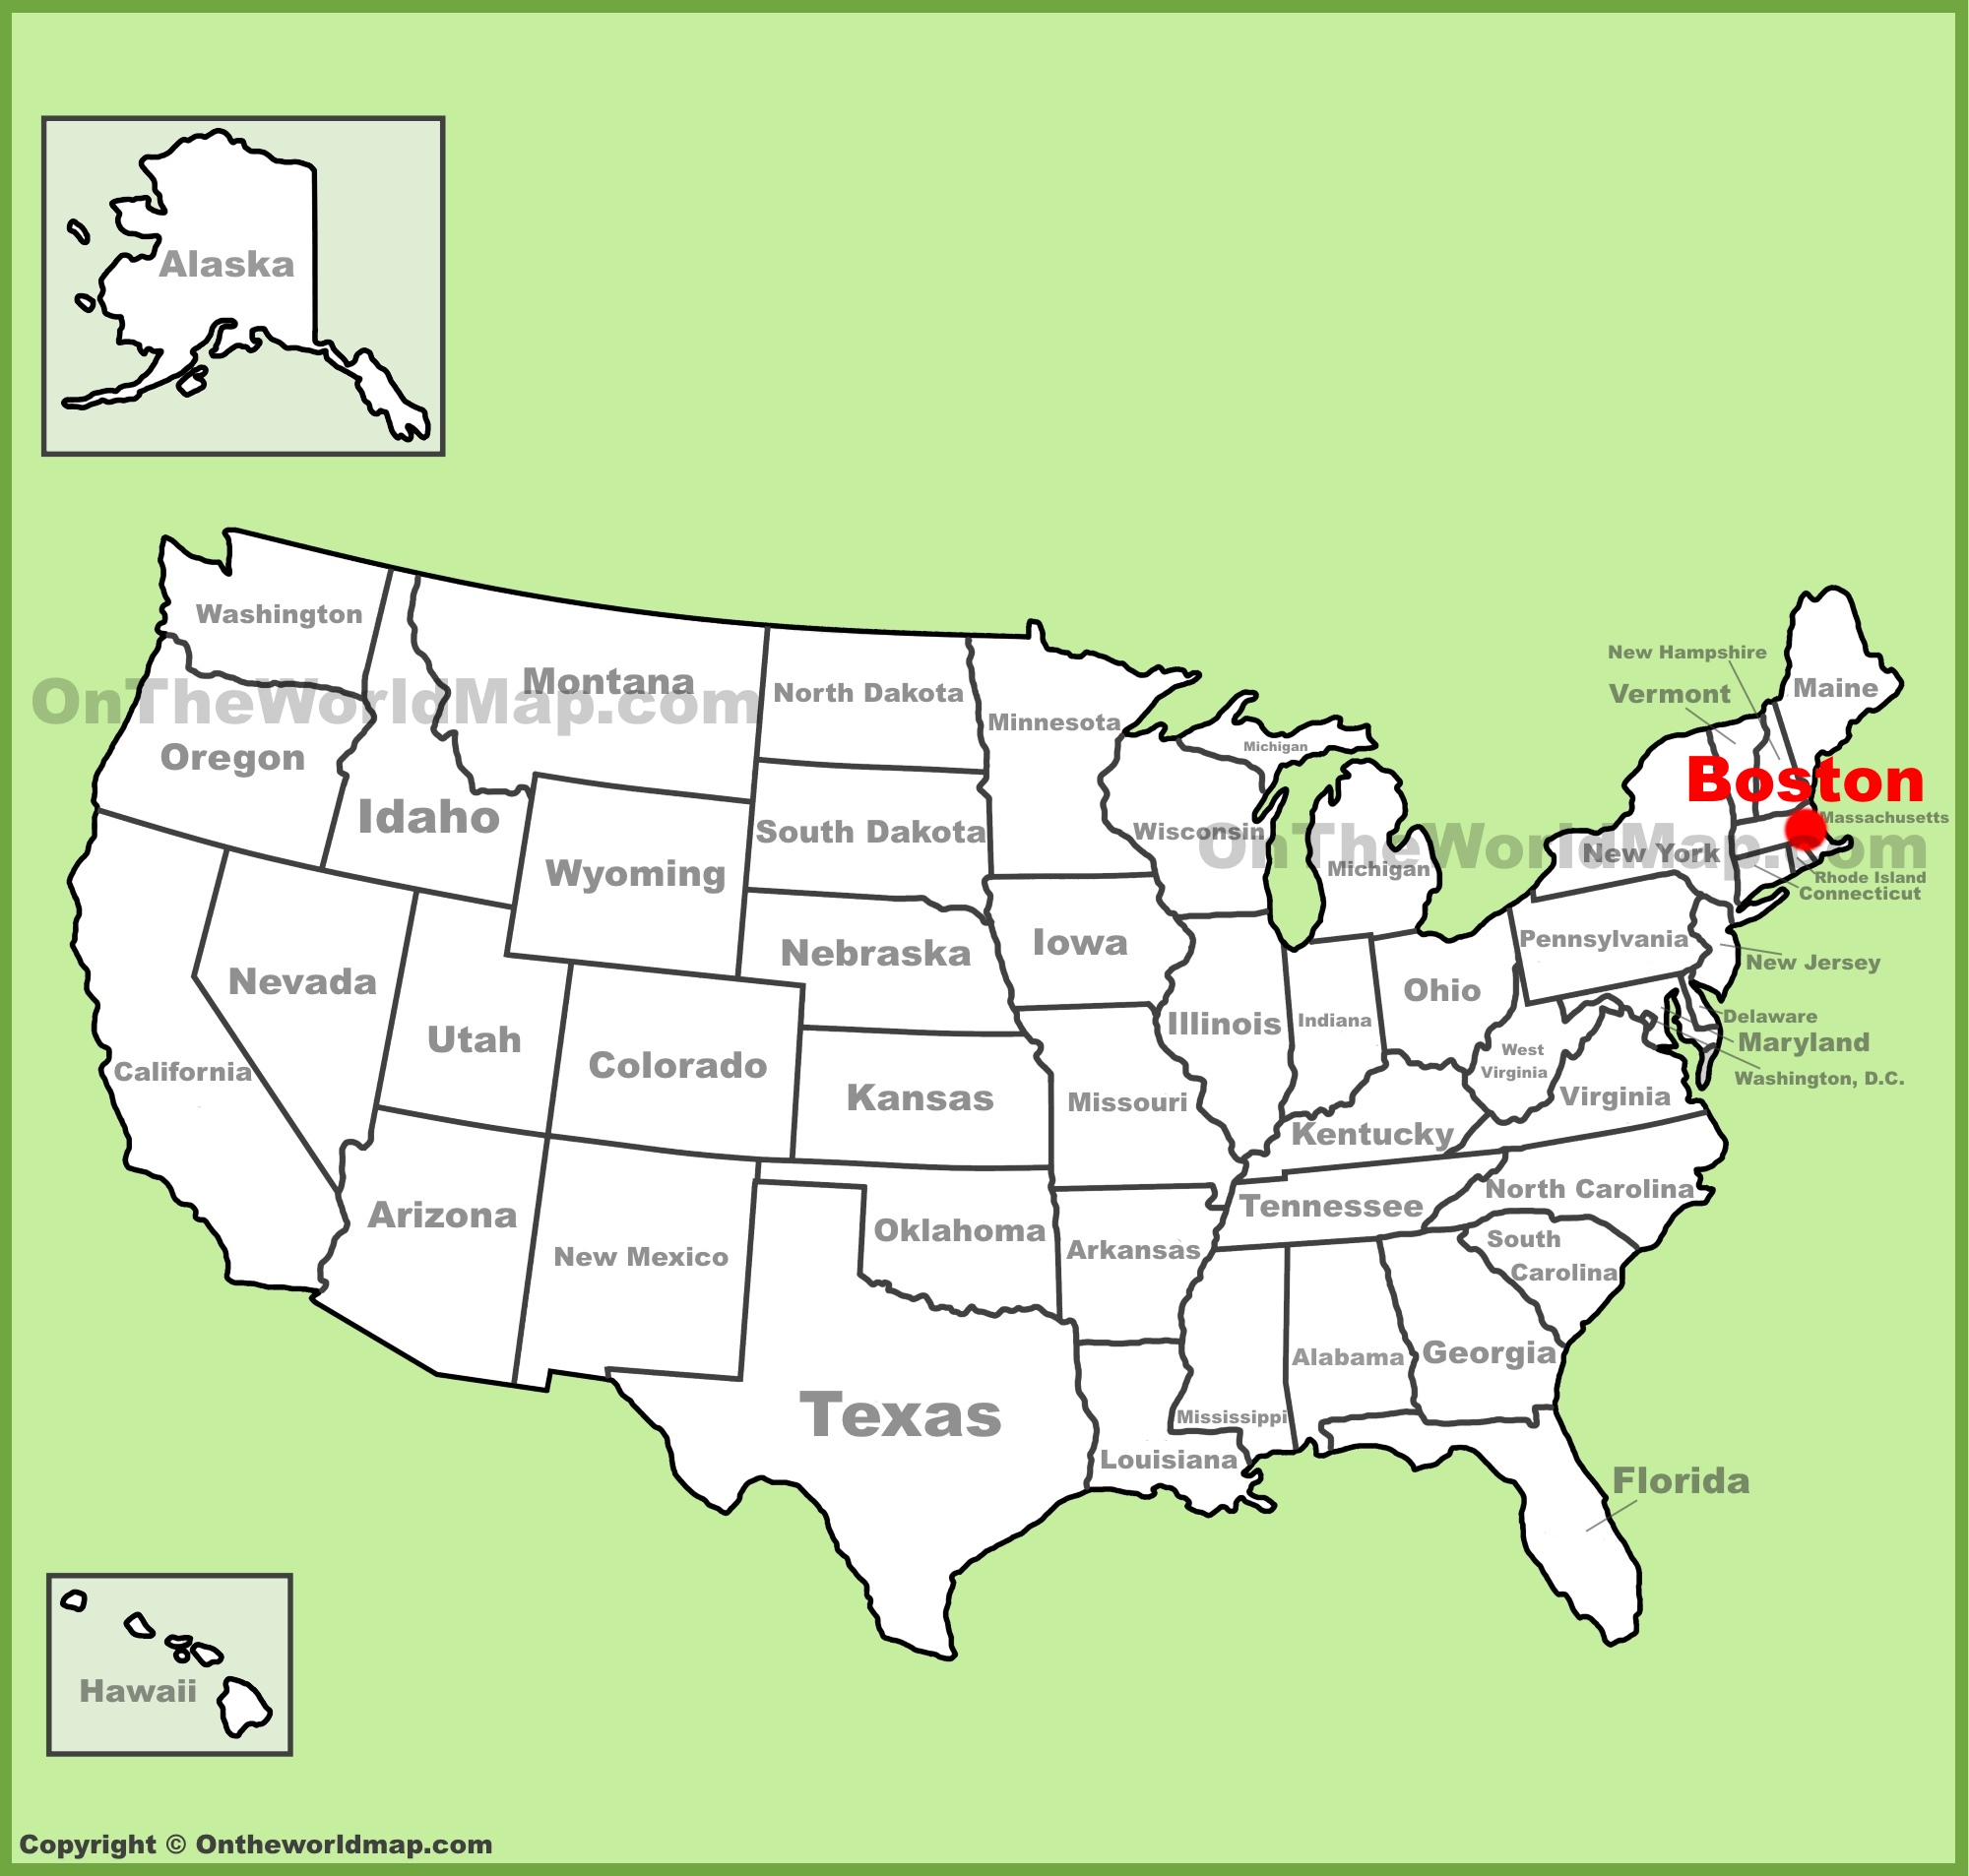 Boston On Us Map Boston location on the U.S. Map